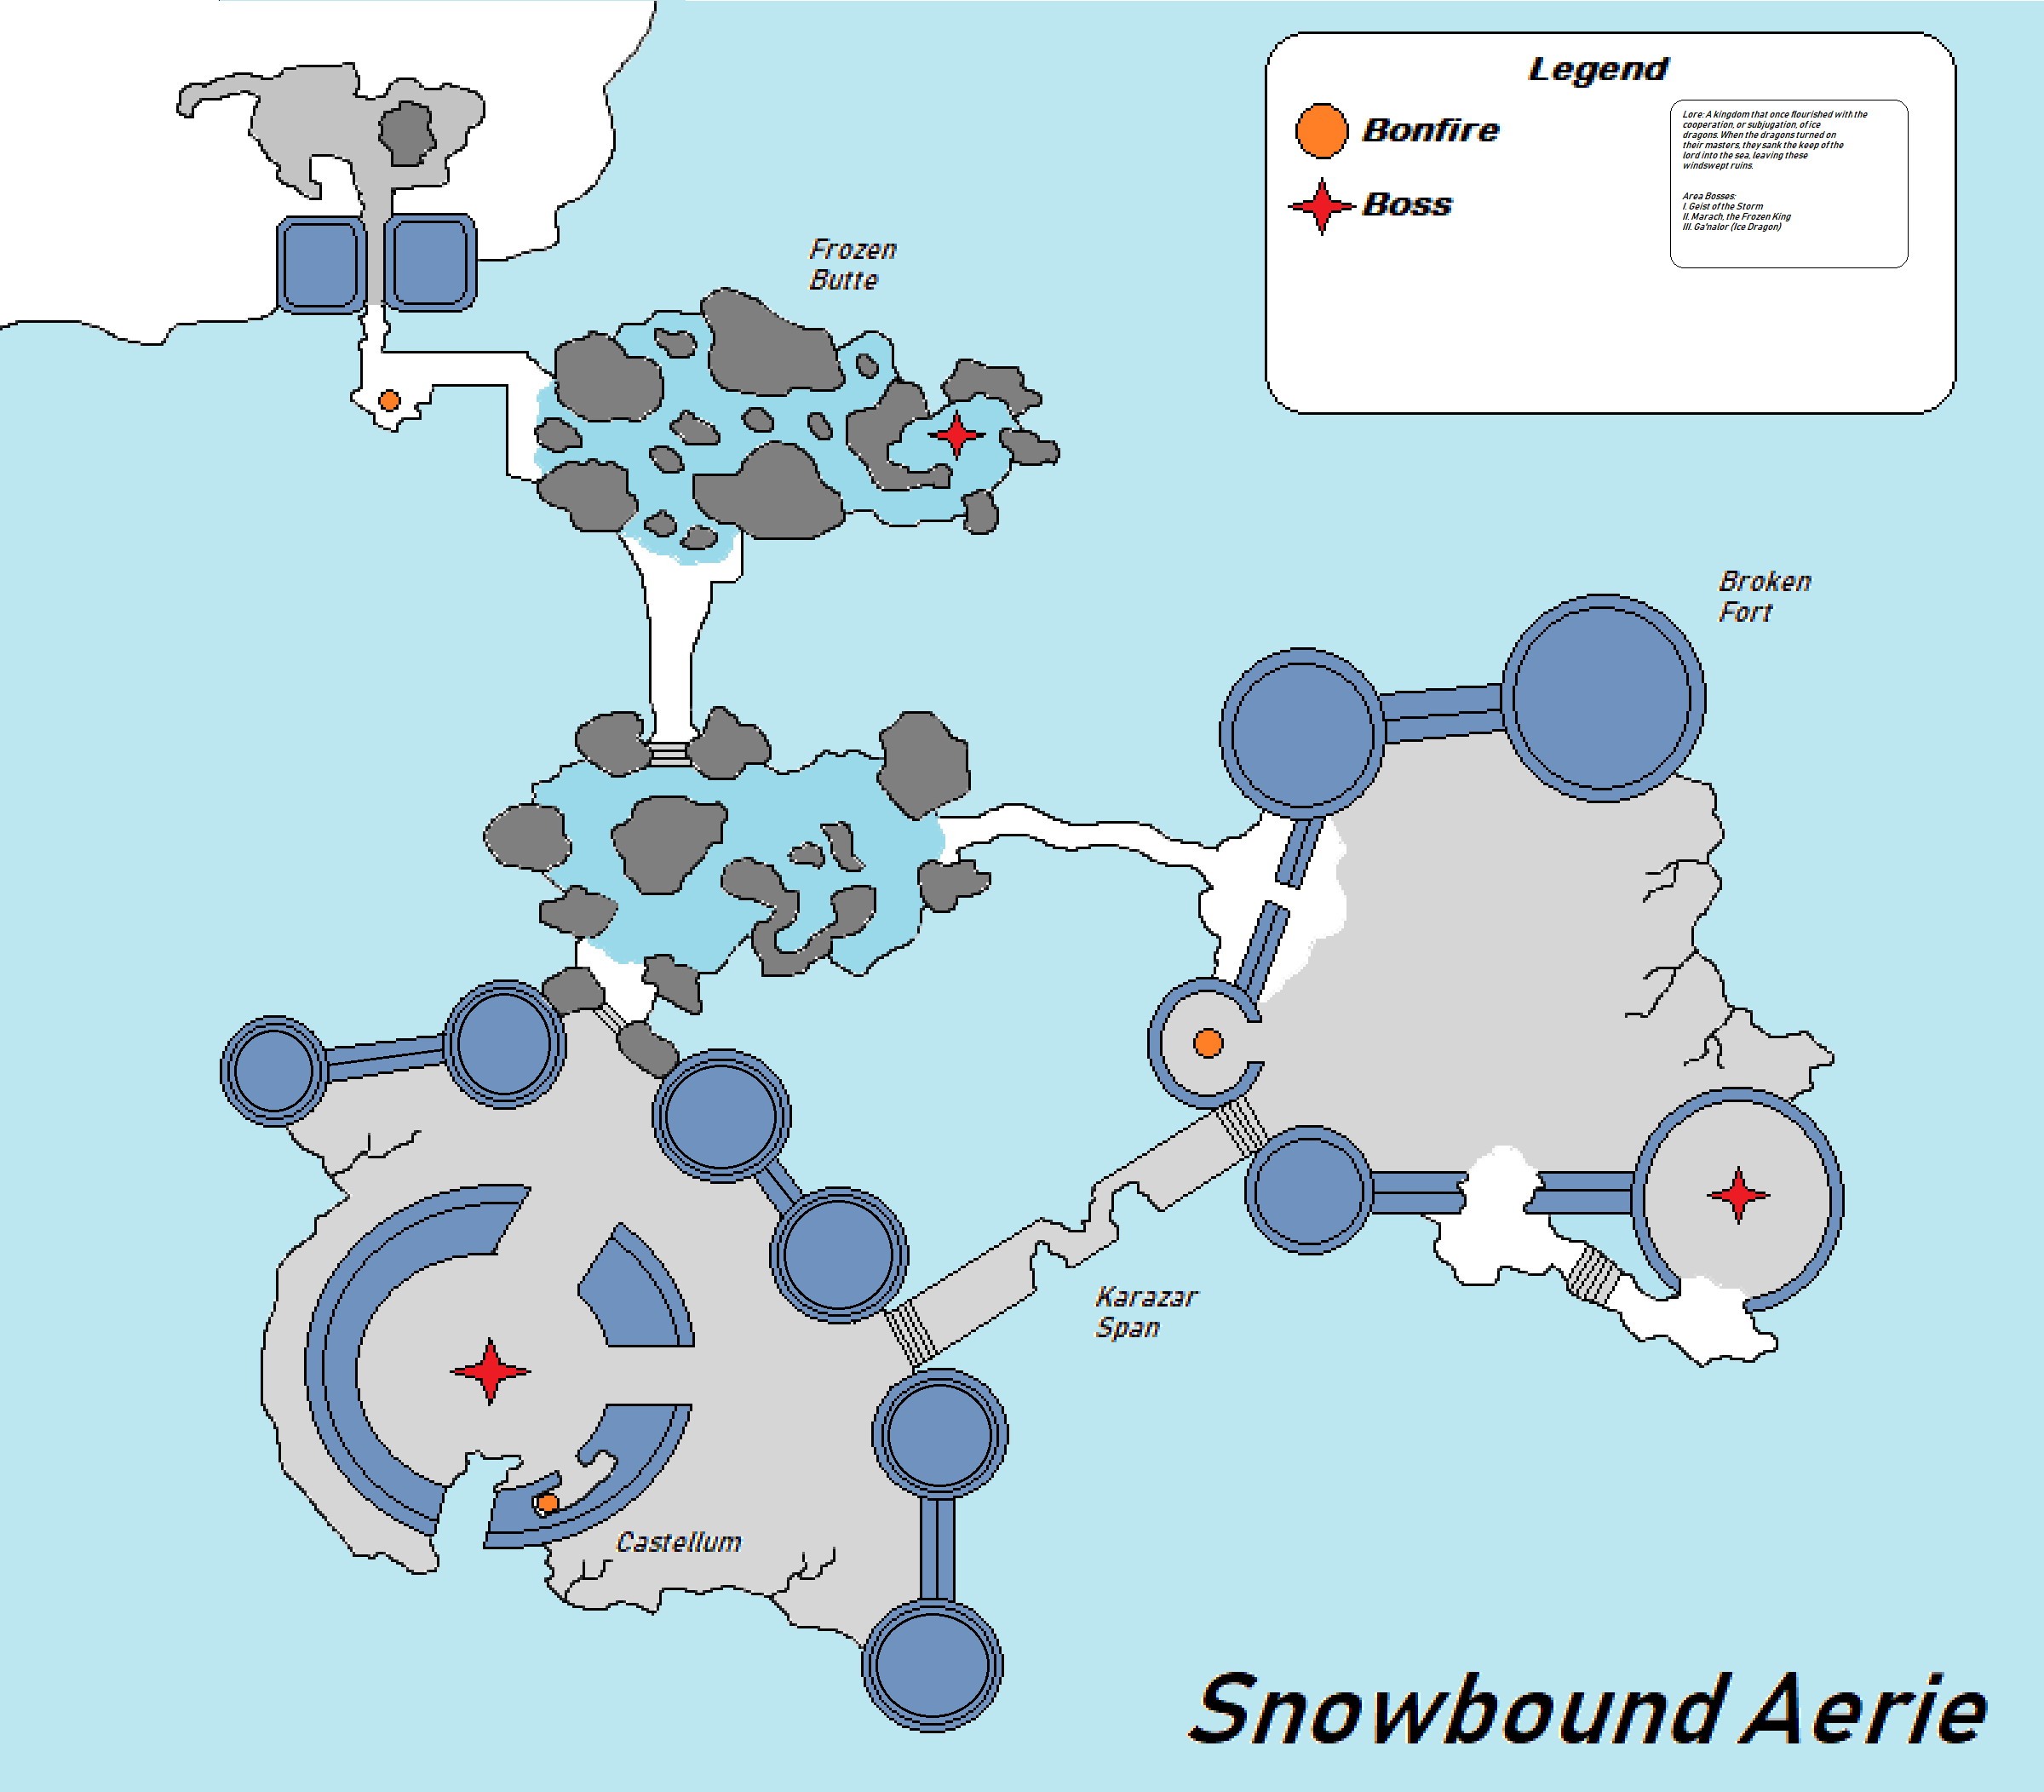 Snowbound Aerie (Dark Souls Concept Map) by anshark on ... on tomb raider ii map, crusader kings ii map, five nights at freddy's map, guild wars 2 map, tales of symphonia chronicles map, divinity ii map, devil may cry map, demon's souls map, metal gear solid 5 map, diablo ii map, lineage ii map, jak ii map, the witcher map, dead space map,